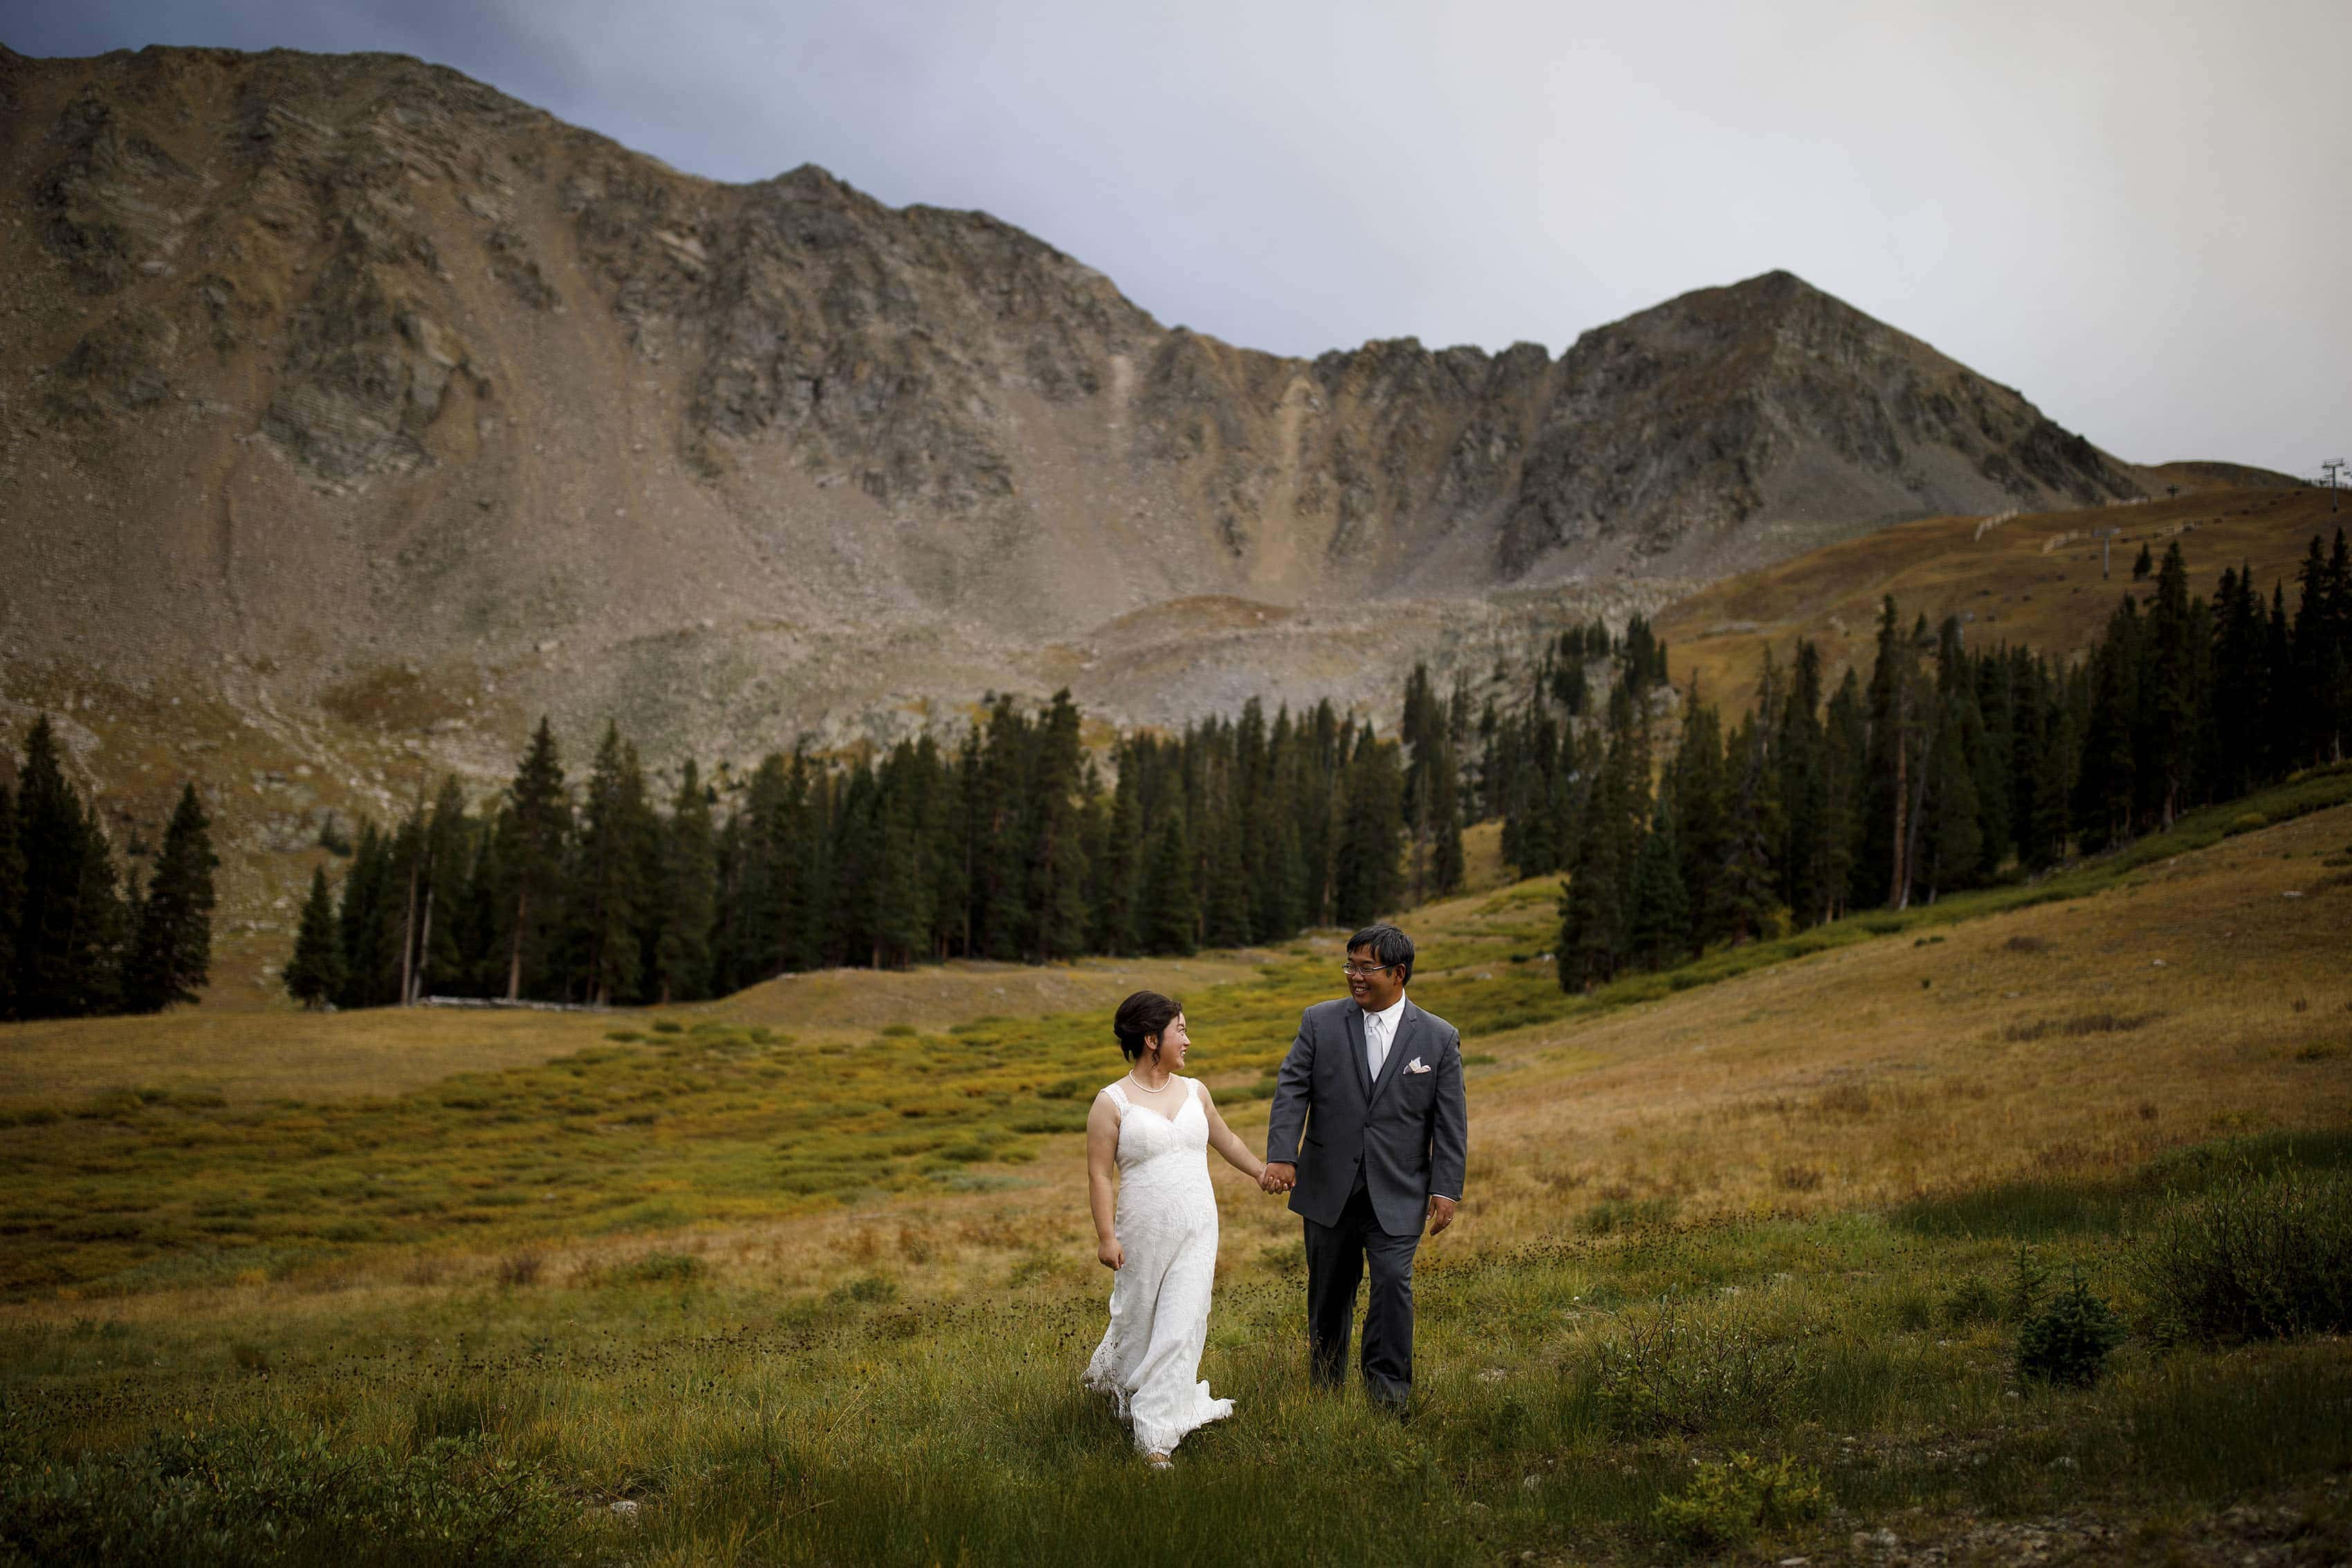 David and Xinya walks together in the field near the East Wall at A Basin during their wedding